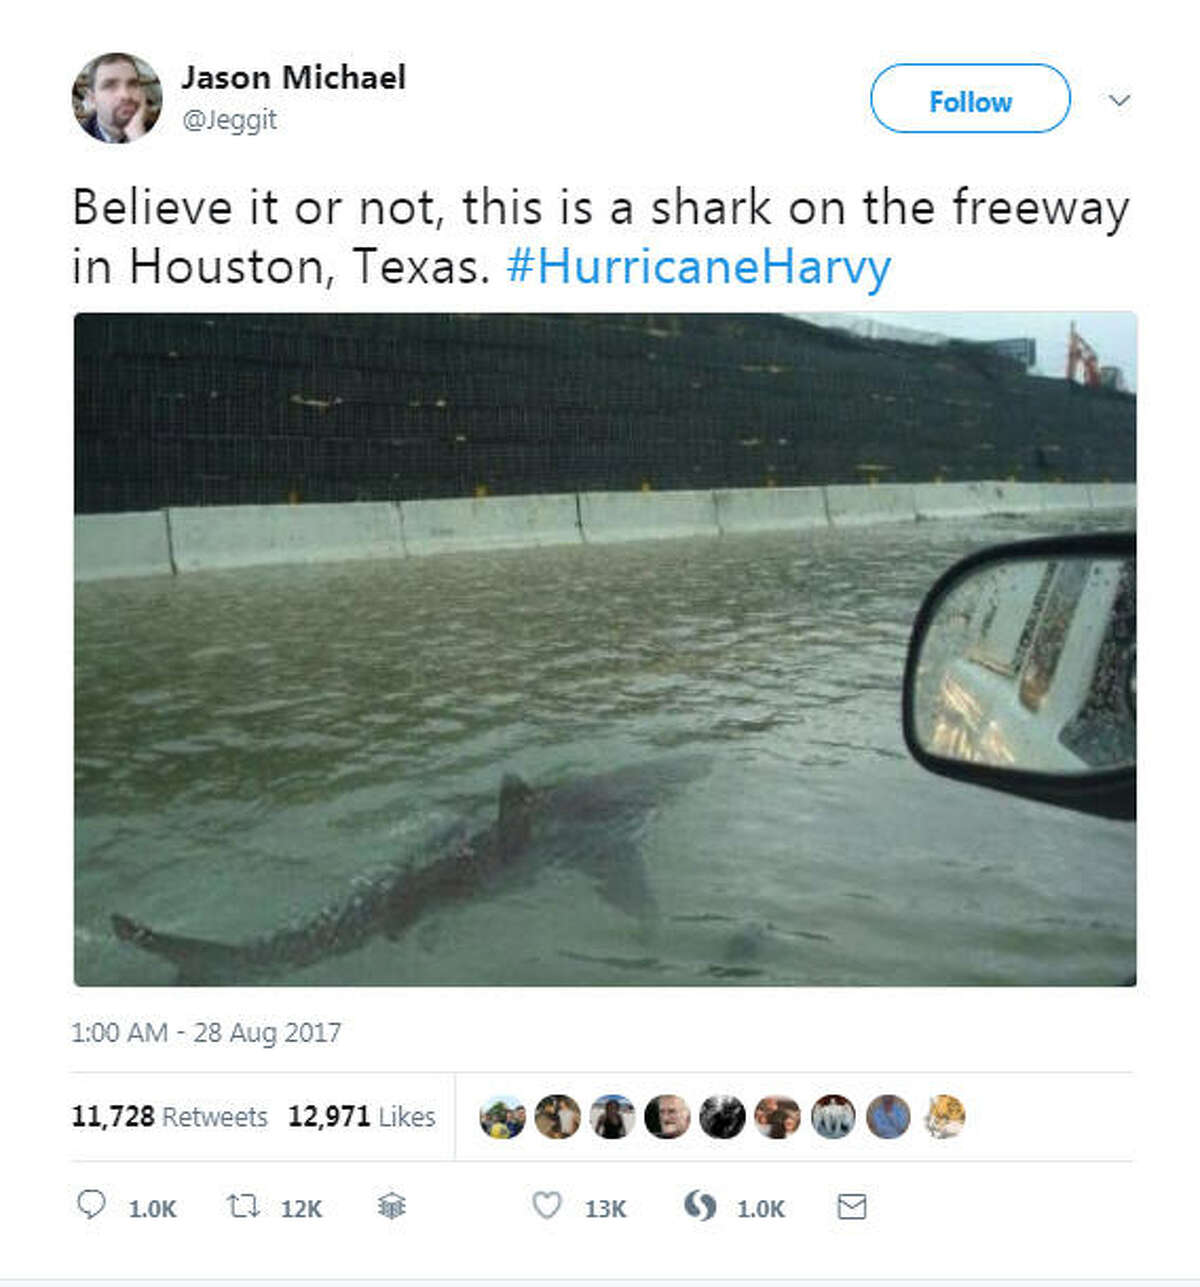 Photos: Tropical Storm Harvey floods Houston An Ireland-based blogger shared this viral, but long-debunked image claiming to show a shark on a Houston highway. See real images of the devastation caused by Tropical Storm Harvey.